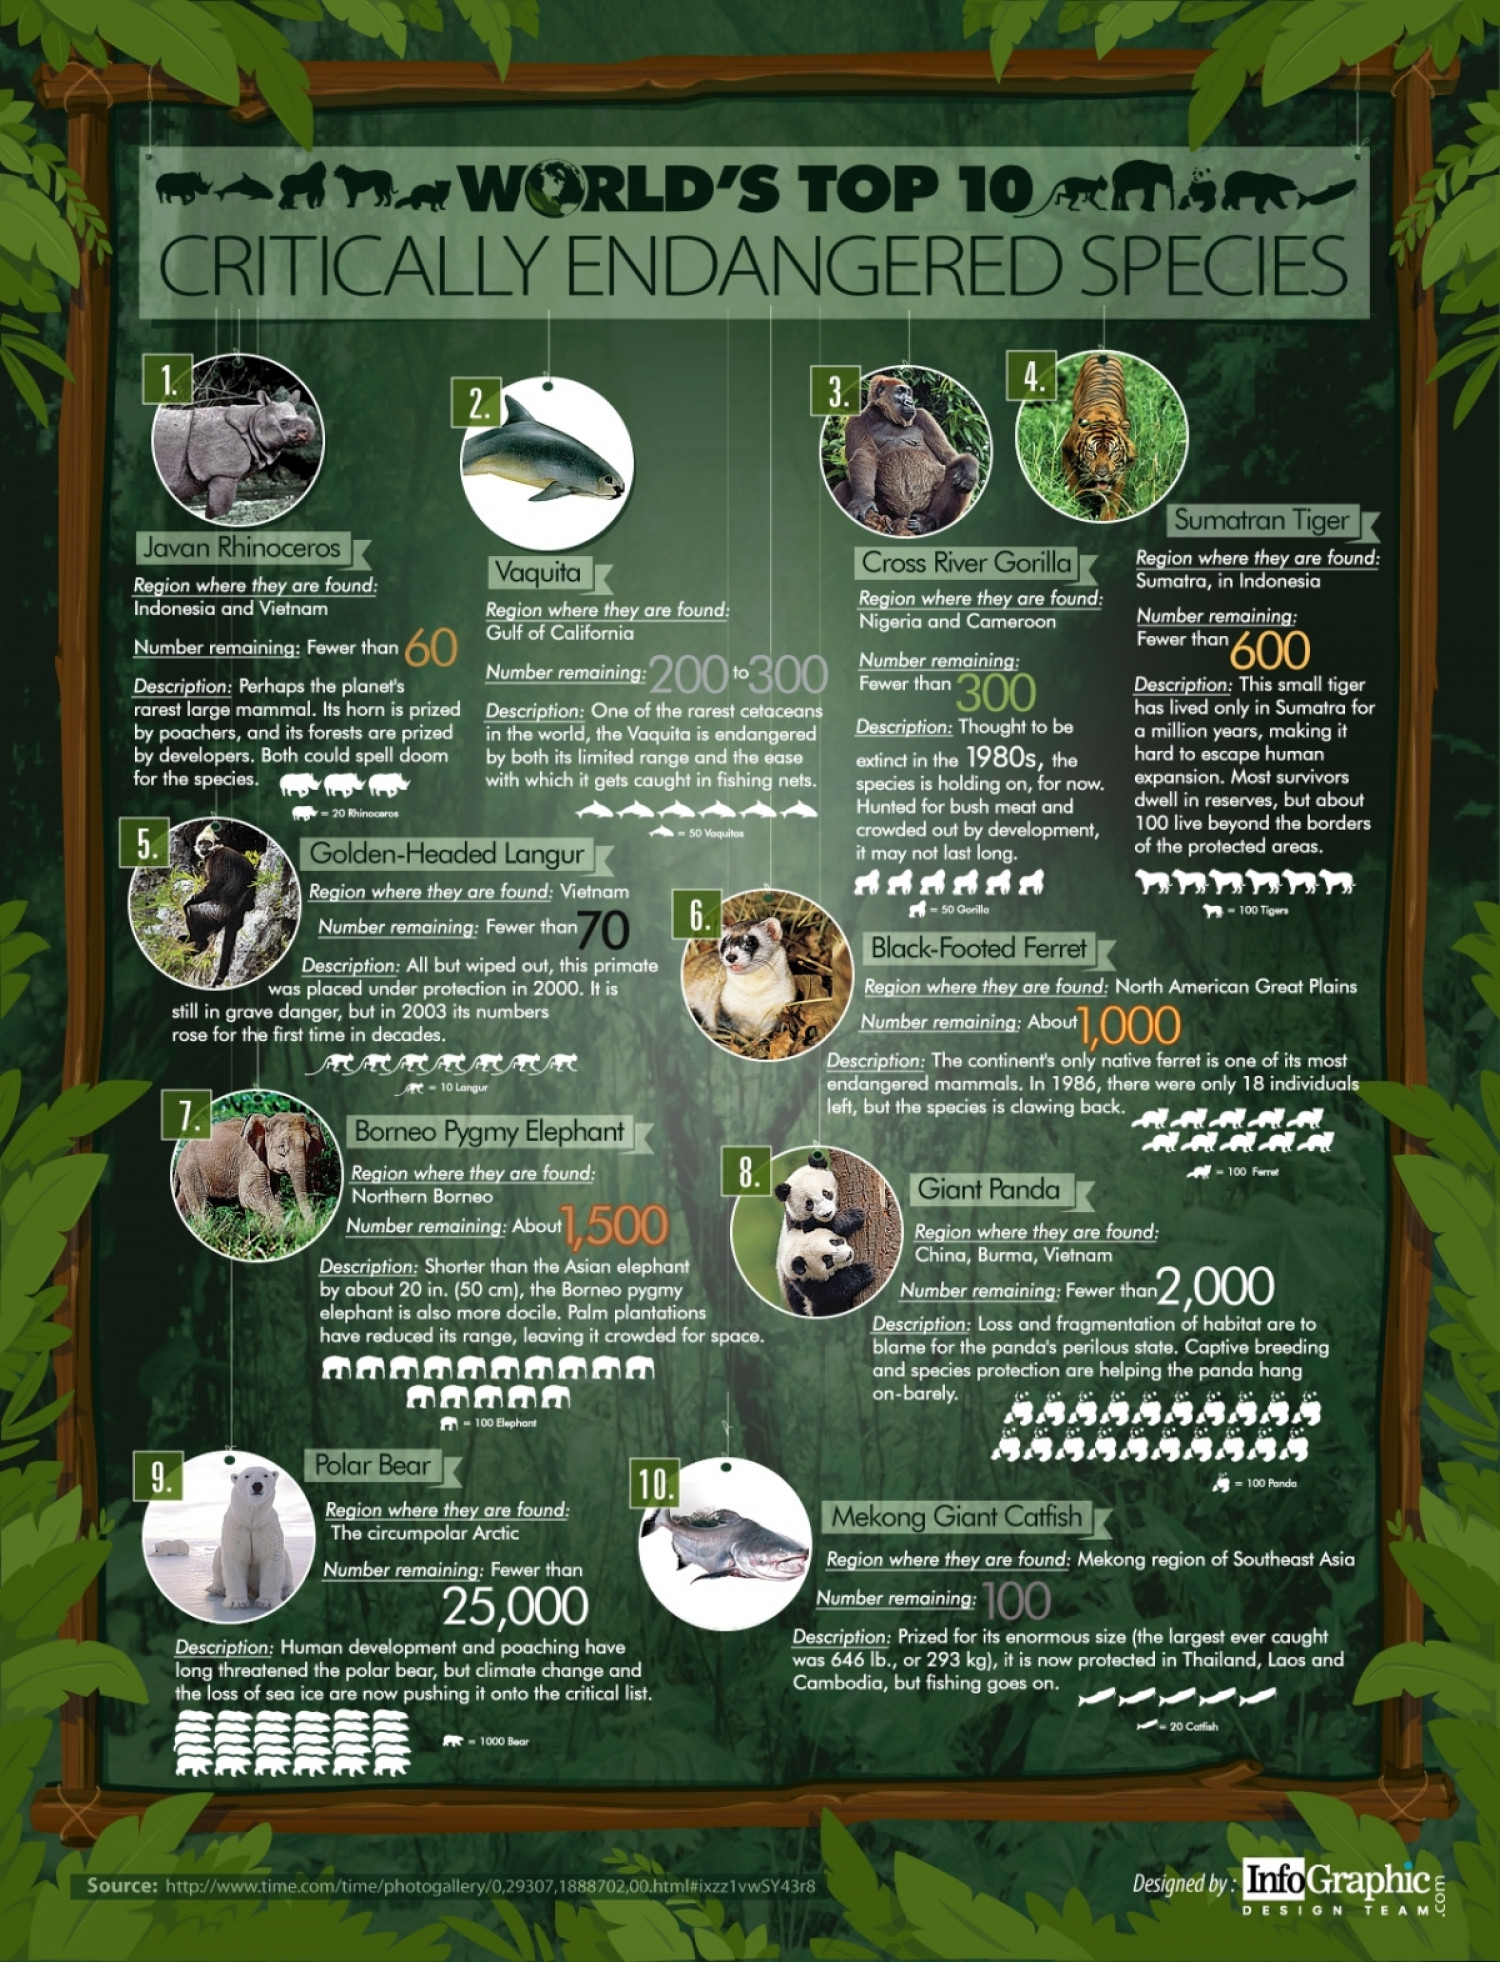 World's Top 10 Critically Endangered Species Infographic